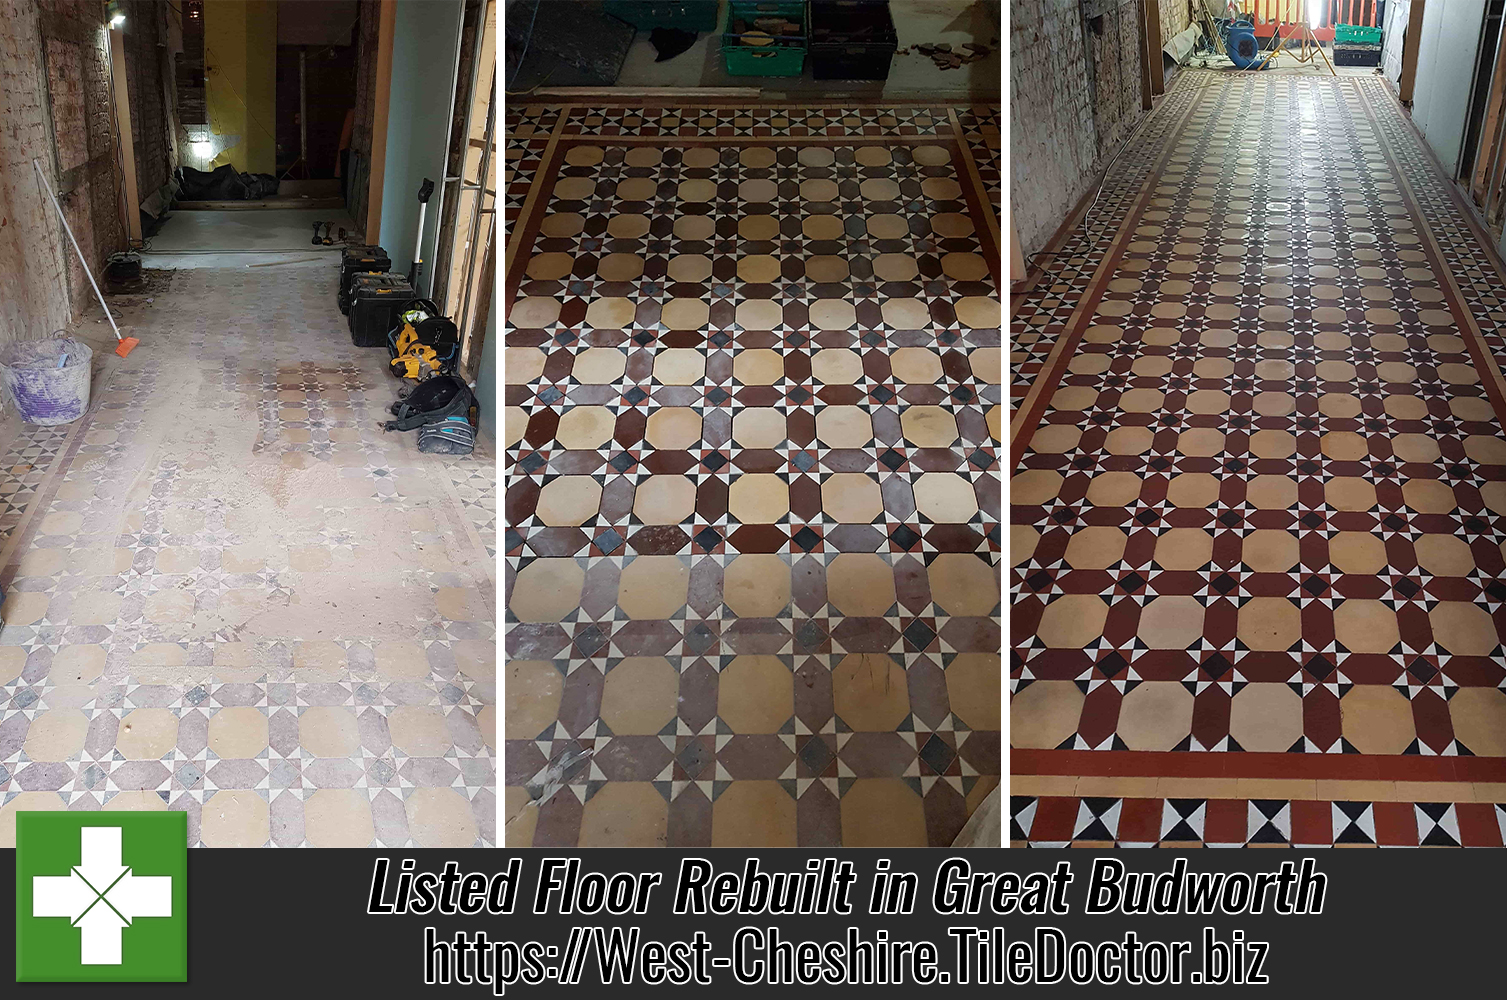 Listed Victorian Floor Restoration at Aston Park House Great Budworth